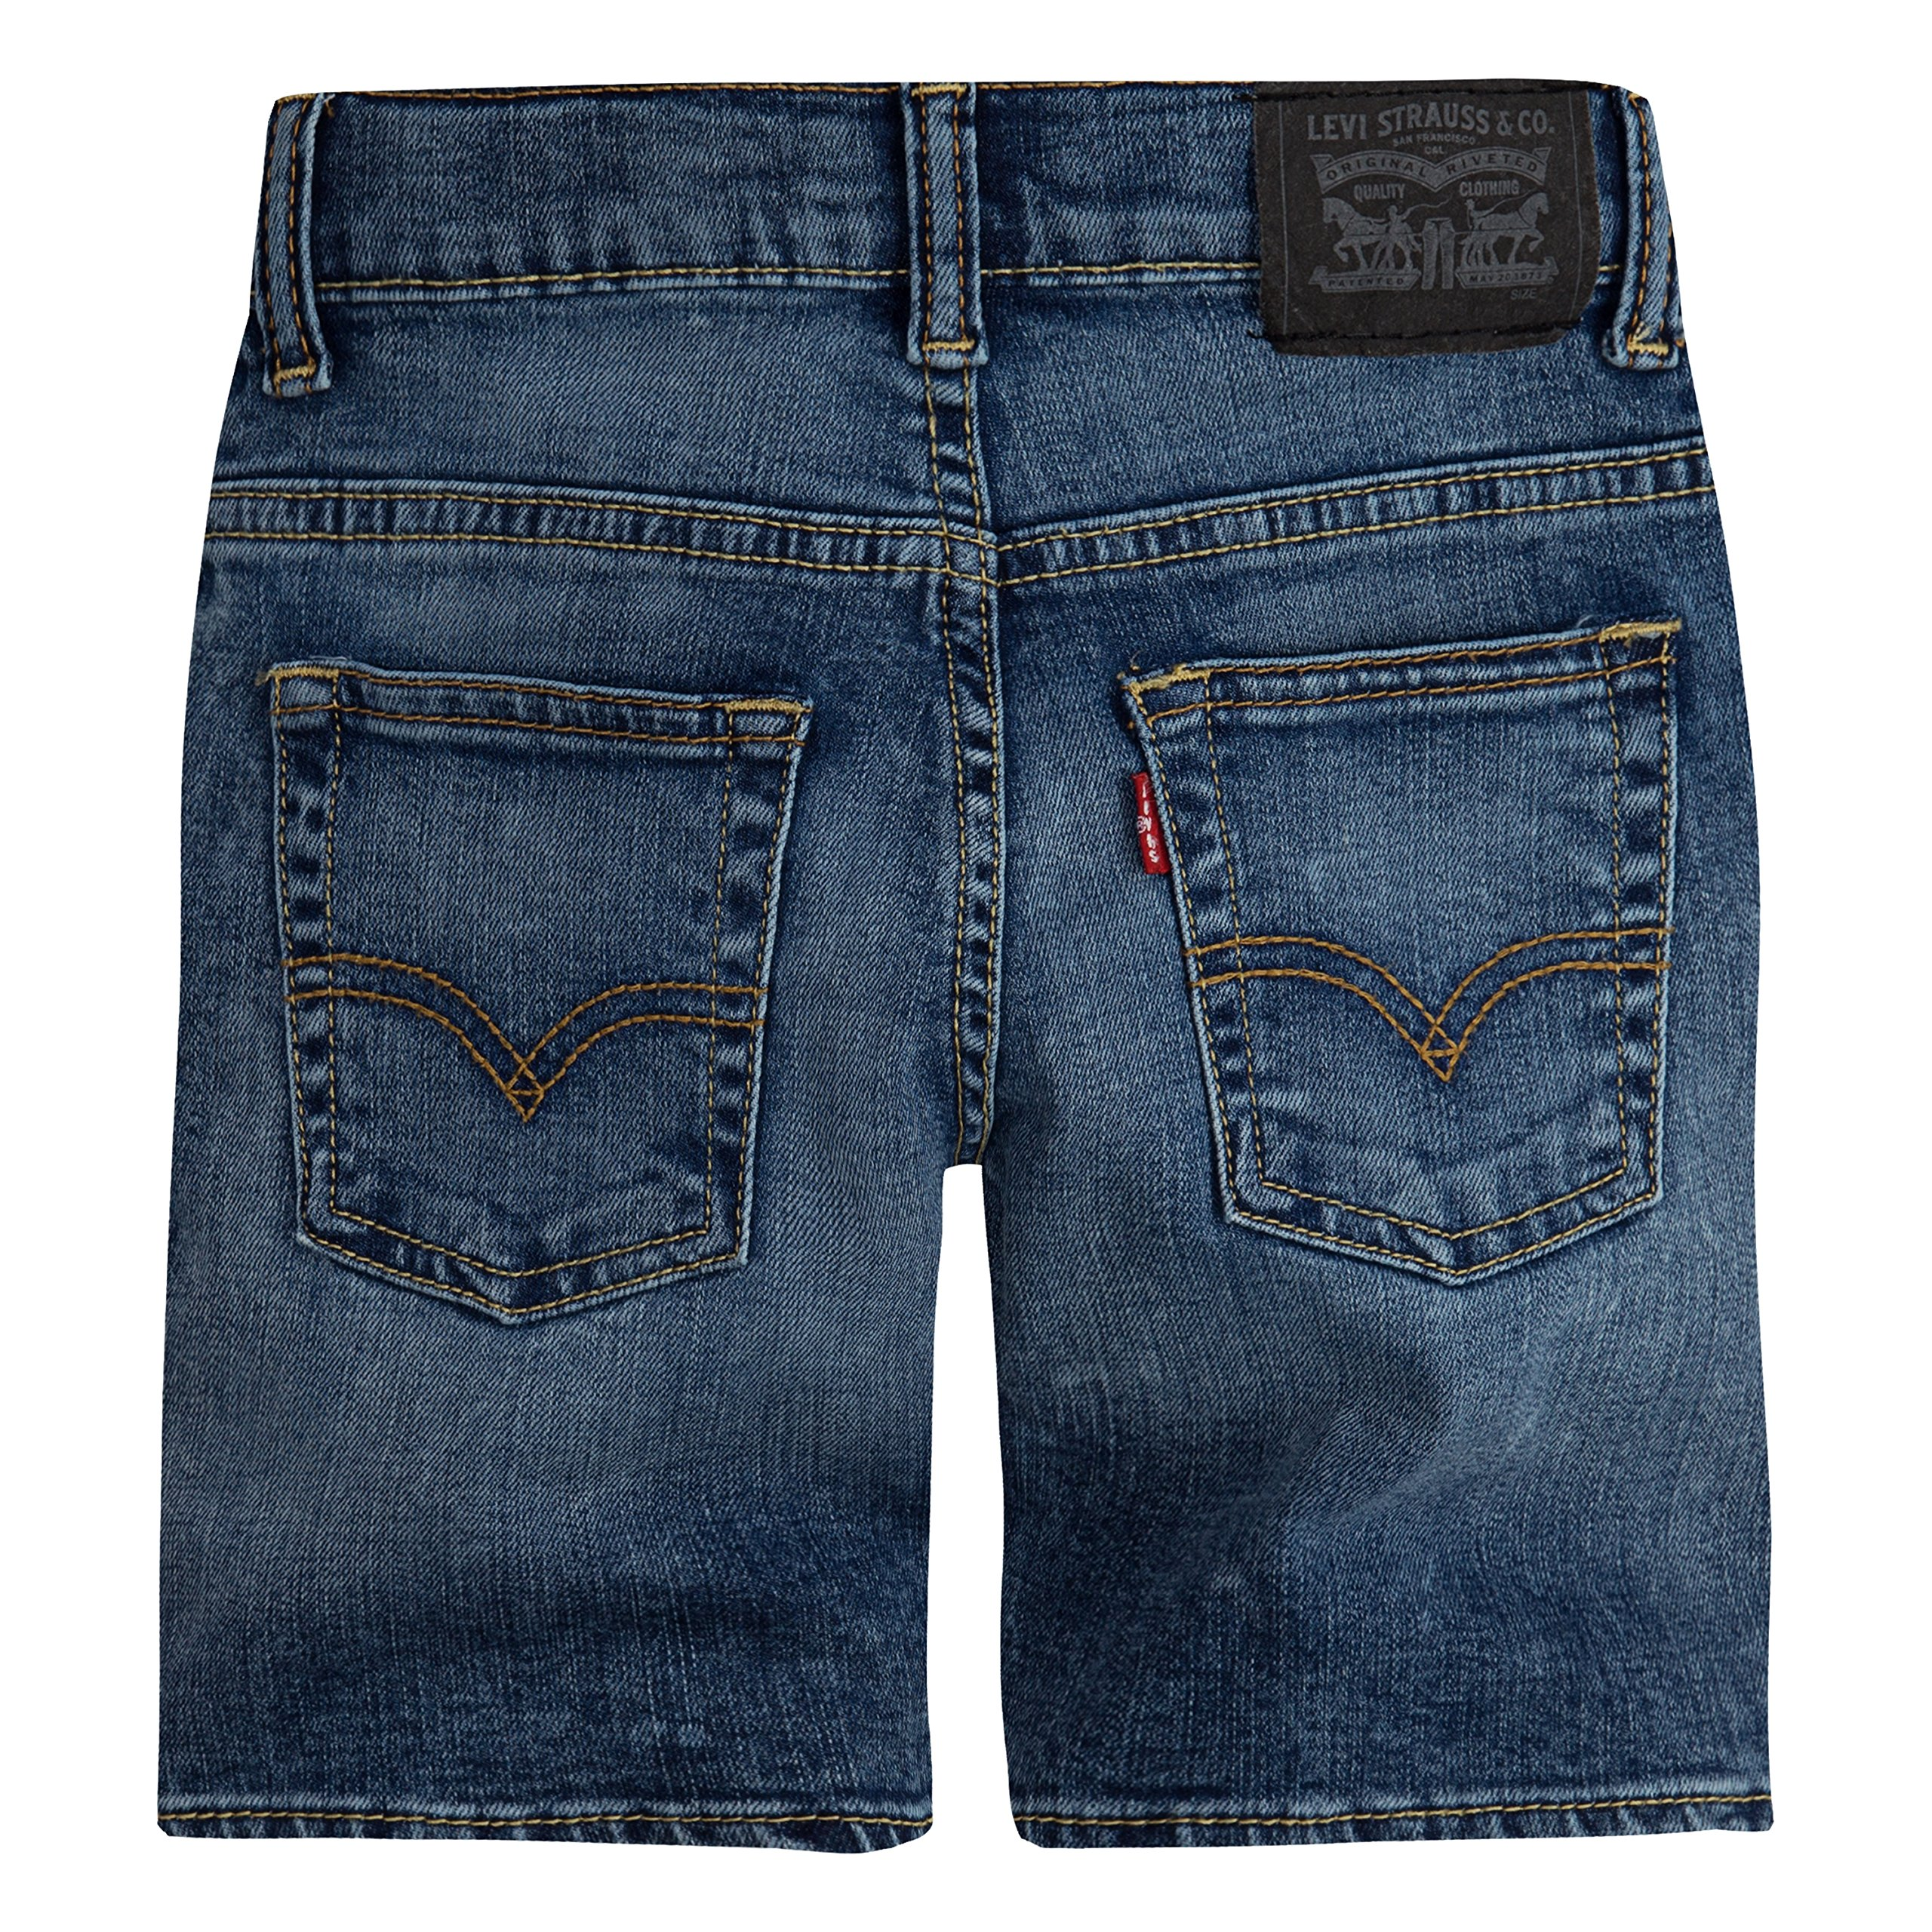 Levi's Big Boys' 511 Performance Shorts, Kosmo, 12 by Levi's (Image #2)